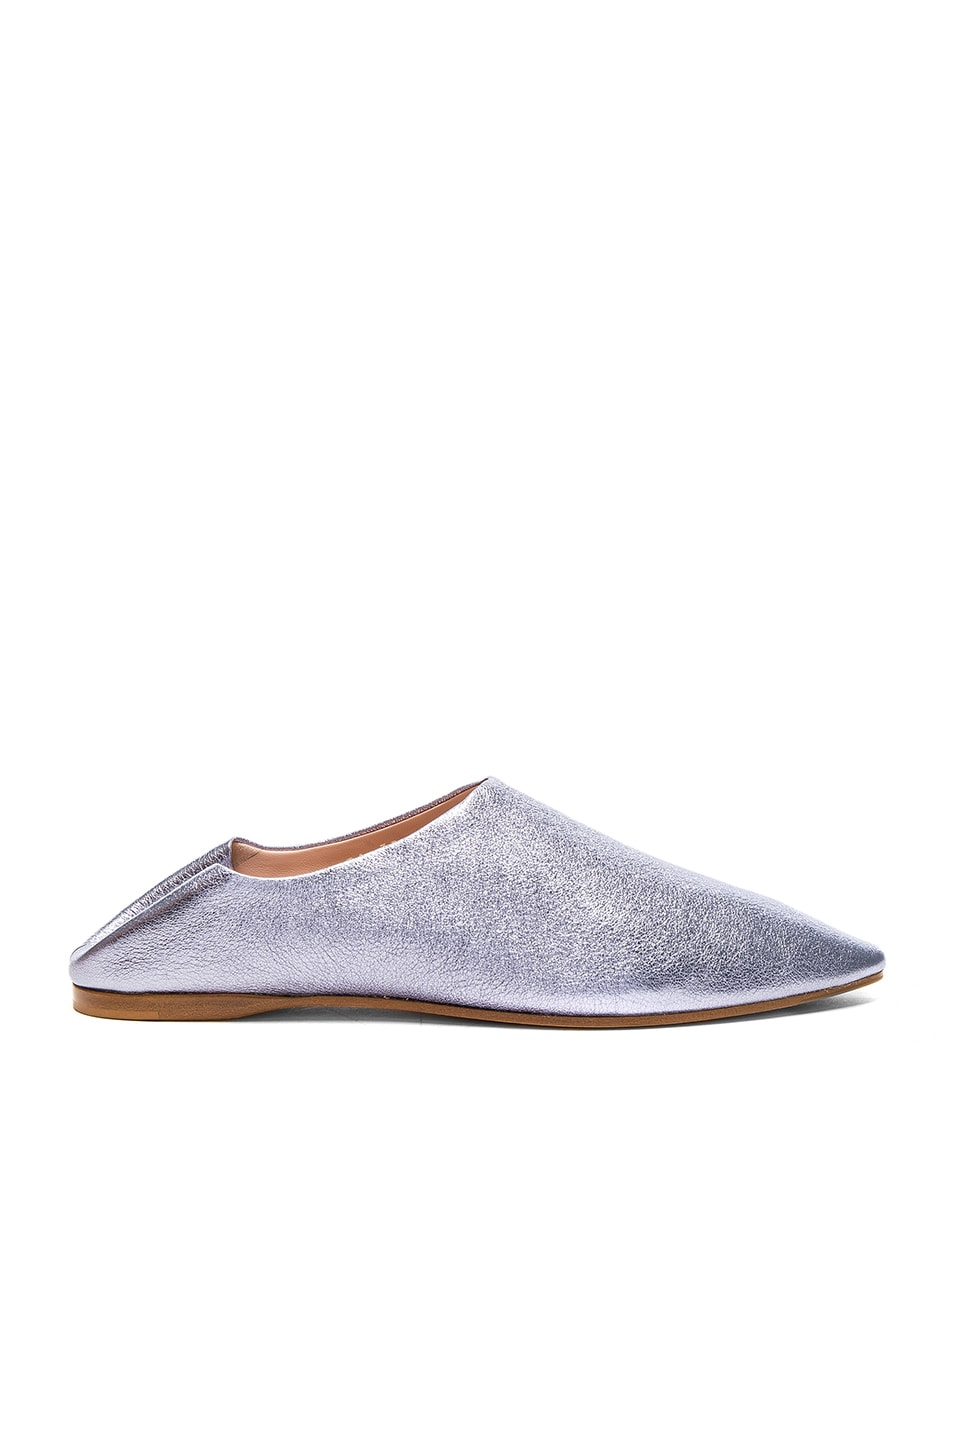 Image 1 of Acne Studios Leather Amina Space Flats in Lavender Grey